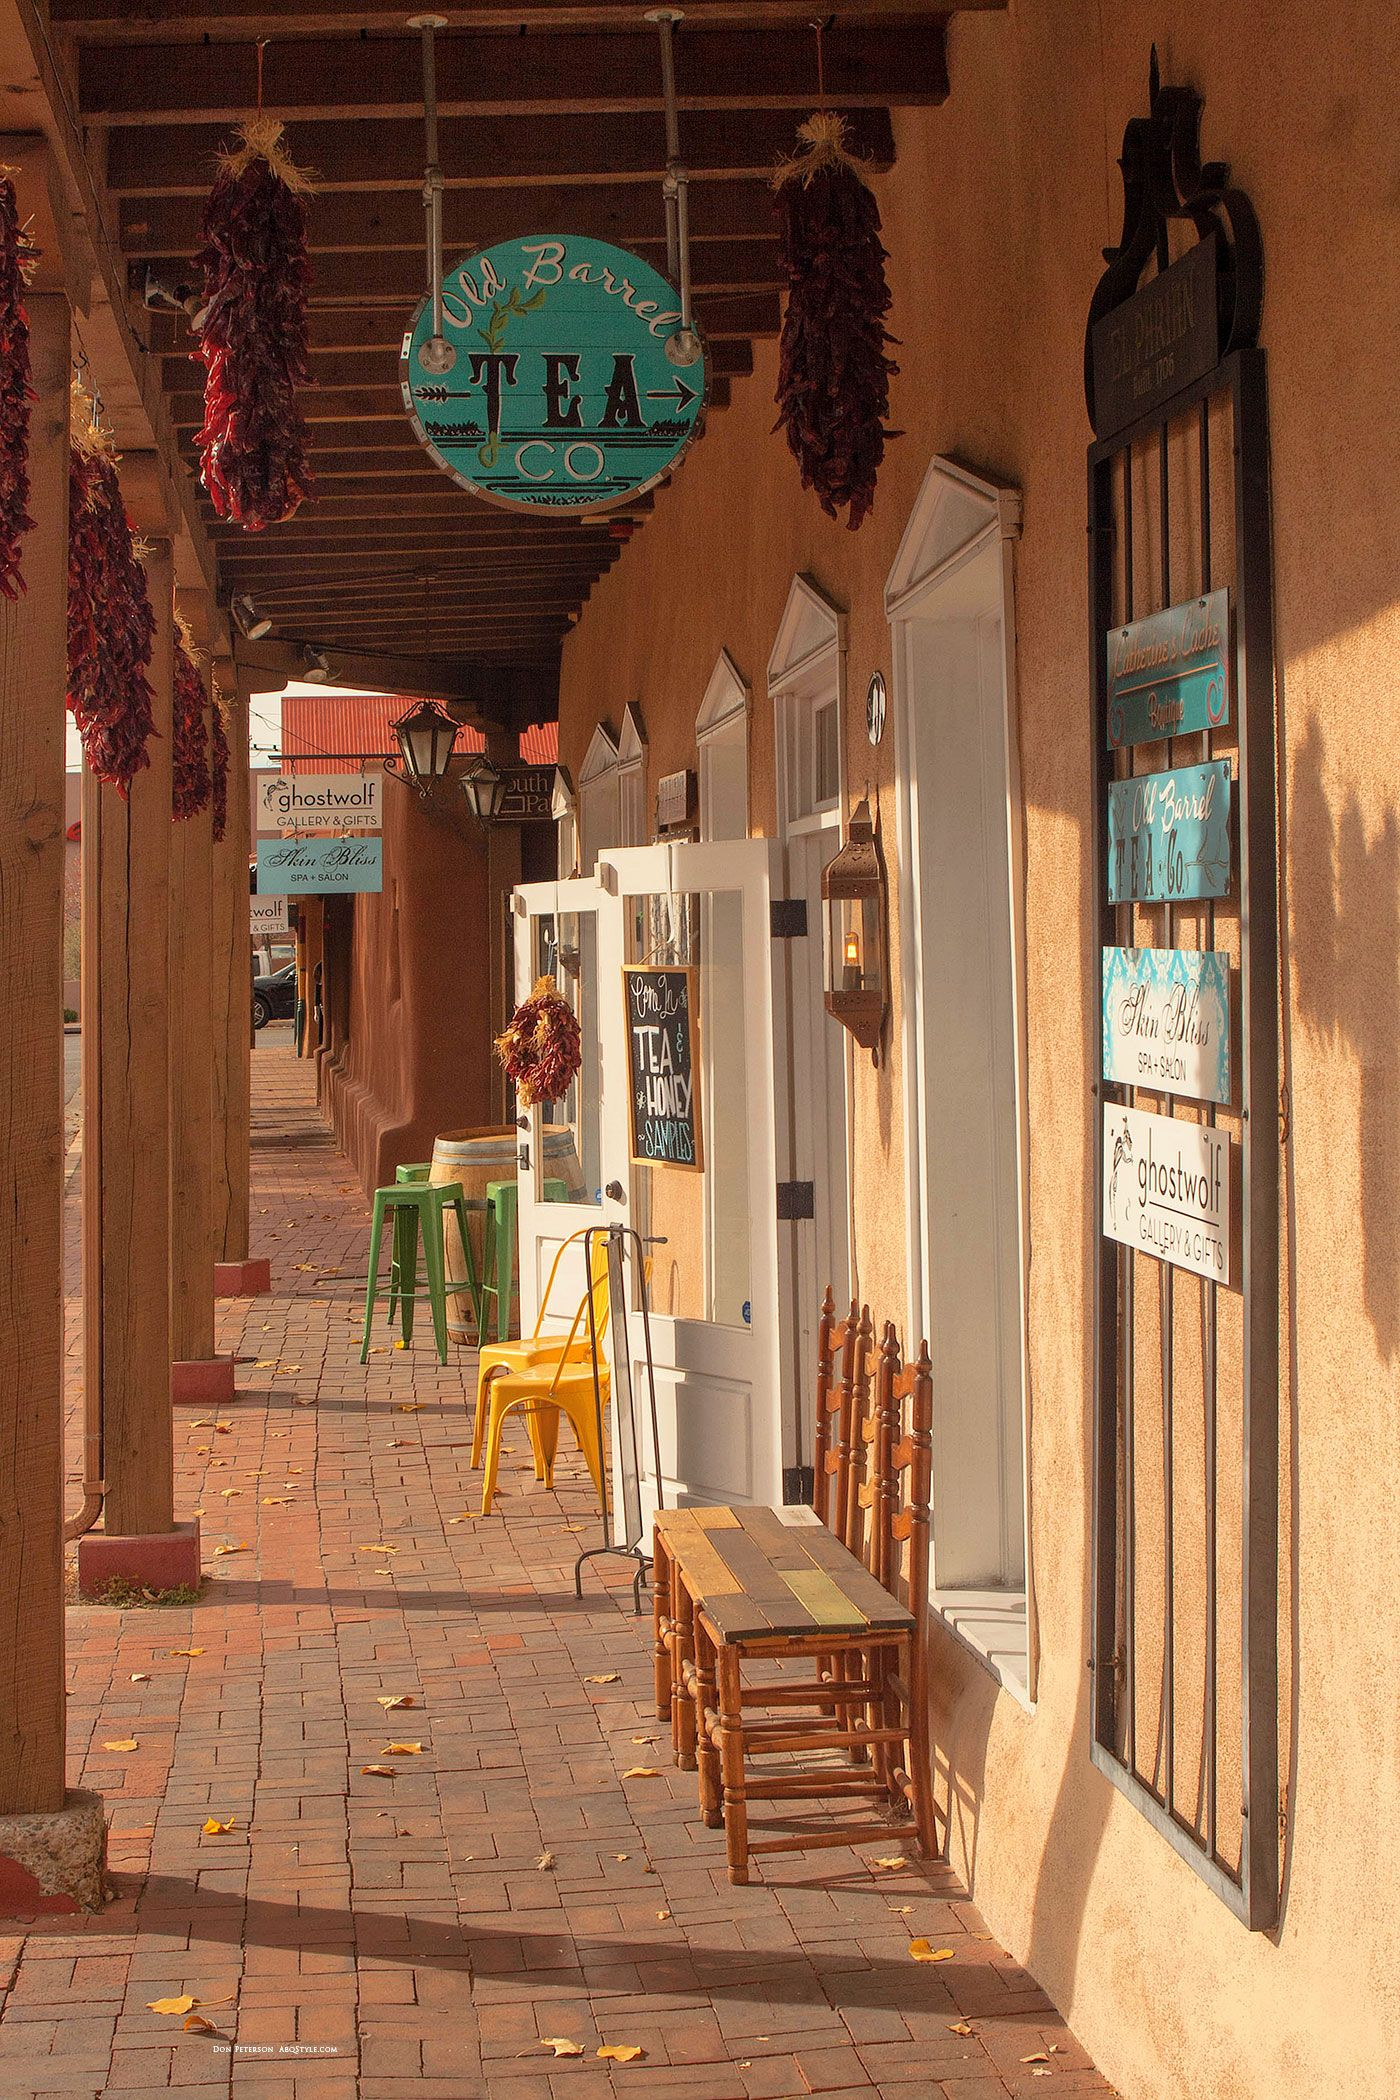 Things to Do In Old Town Albuquerque (With images) Old